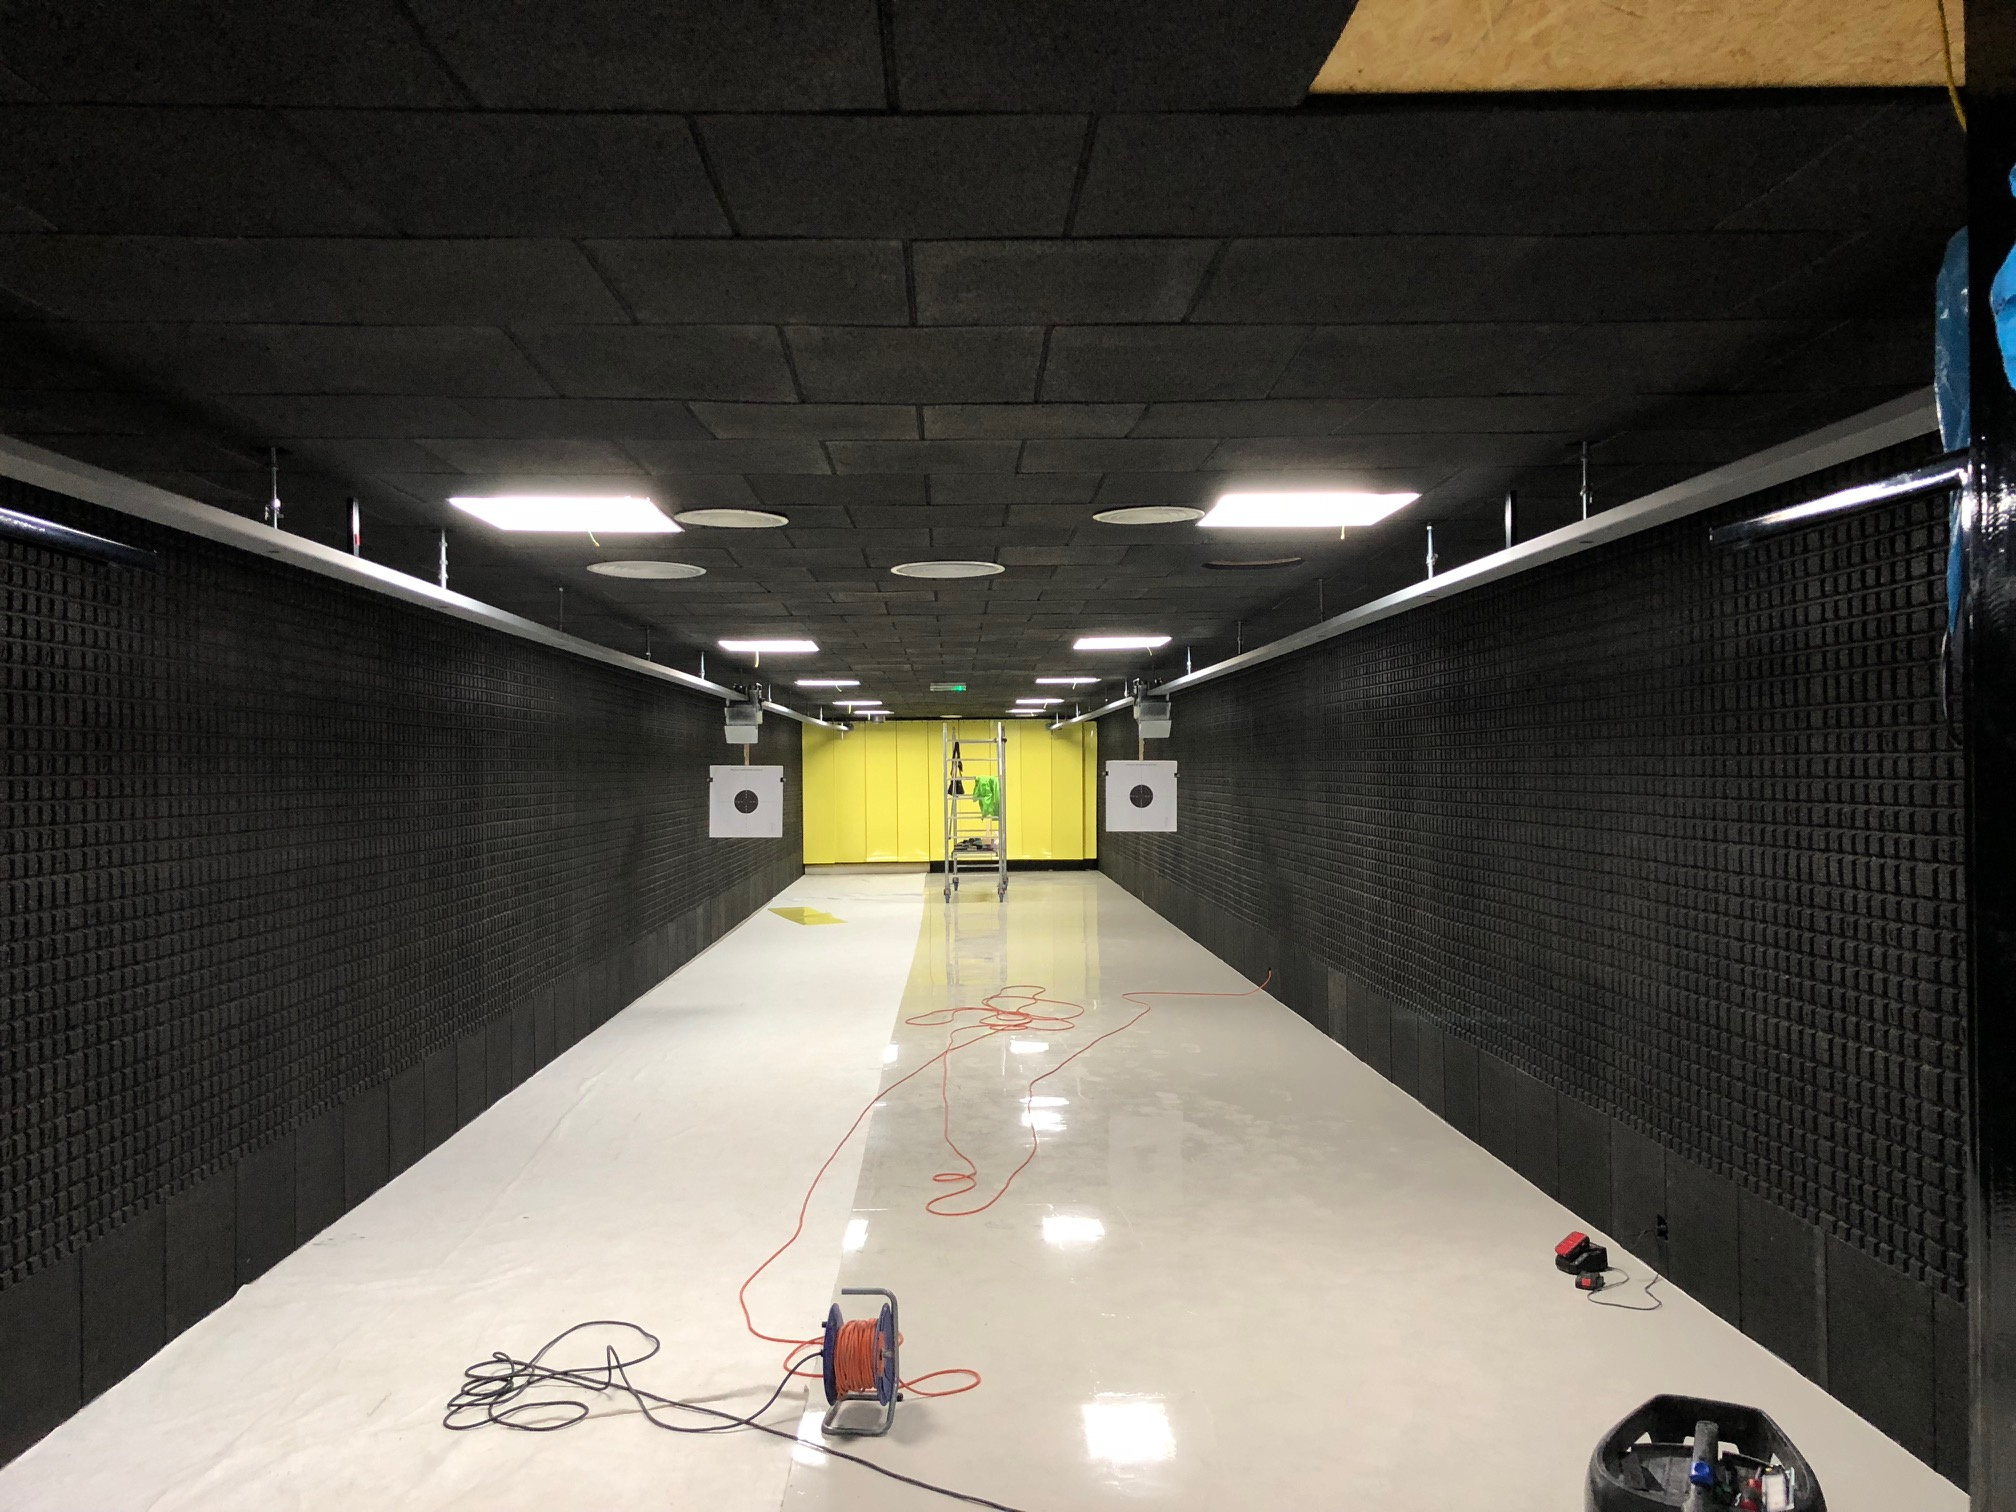 A new test shooting range is being built in the ANTREG premises